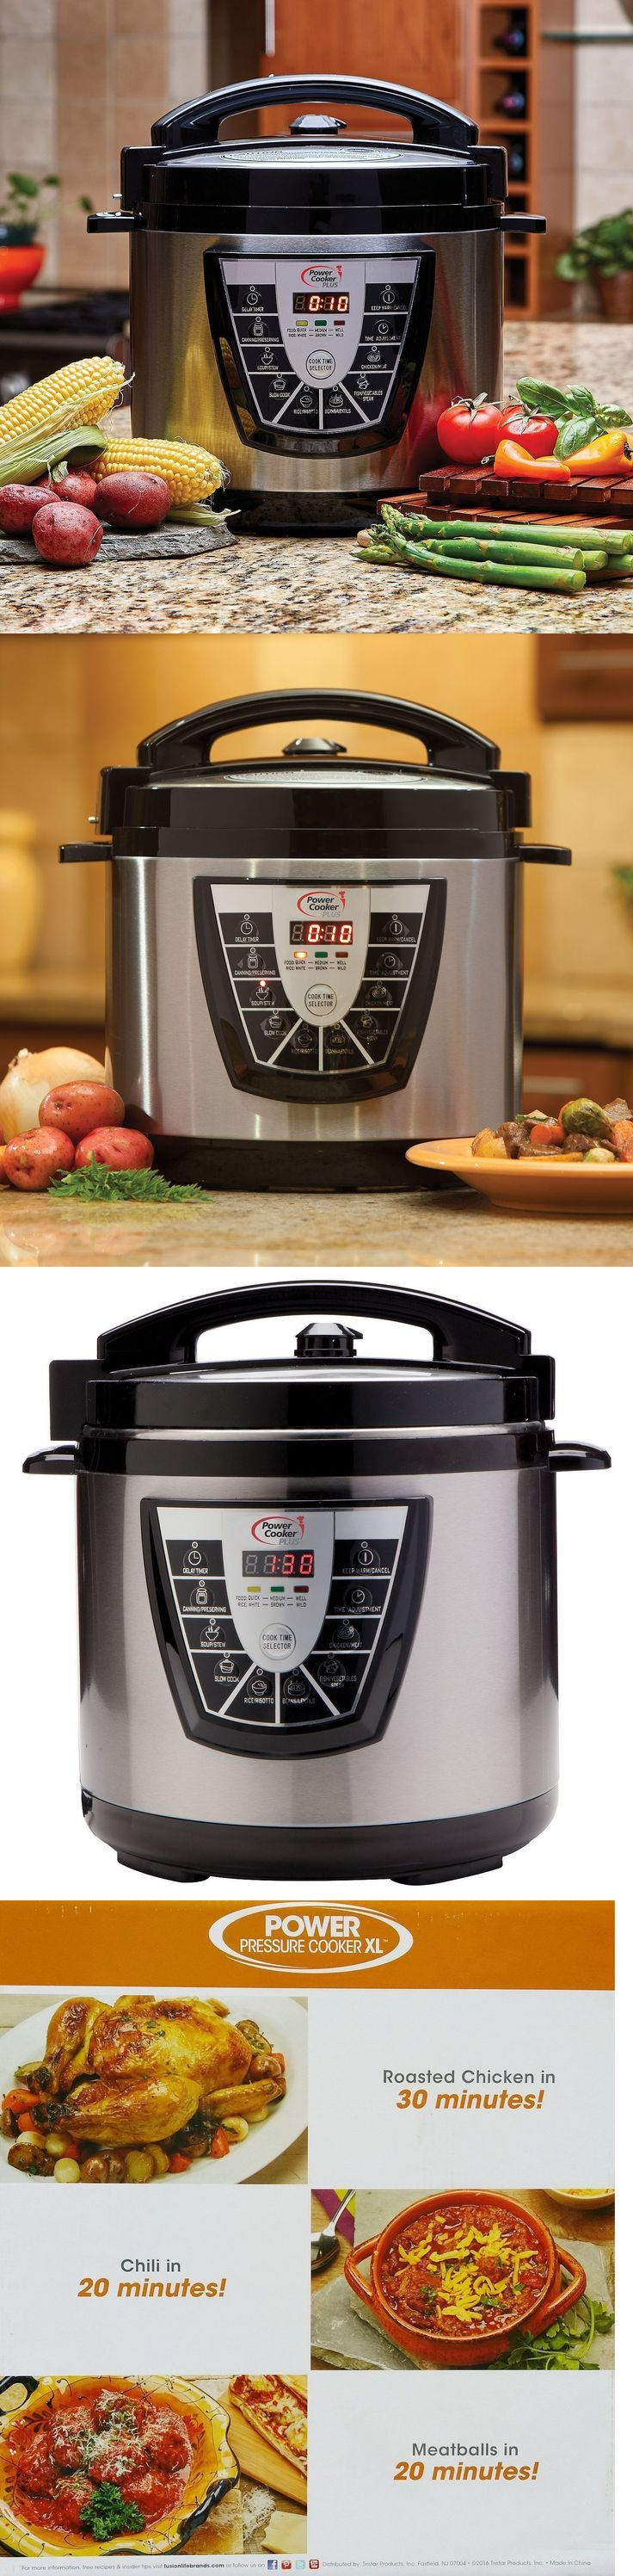 Fagor duo 8 quart pressure cooker - Small Kitchen Appliances Digital Power Pressure Cooker Canner Plus Xl Electric 8 Quart Stainless Steel